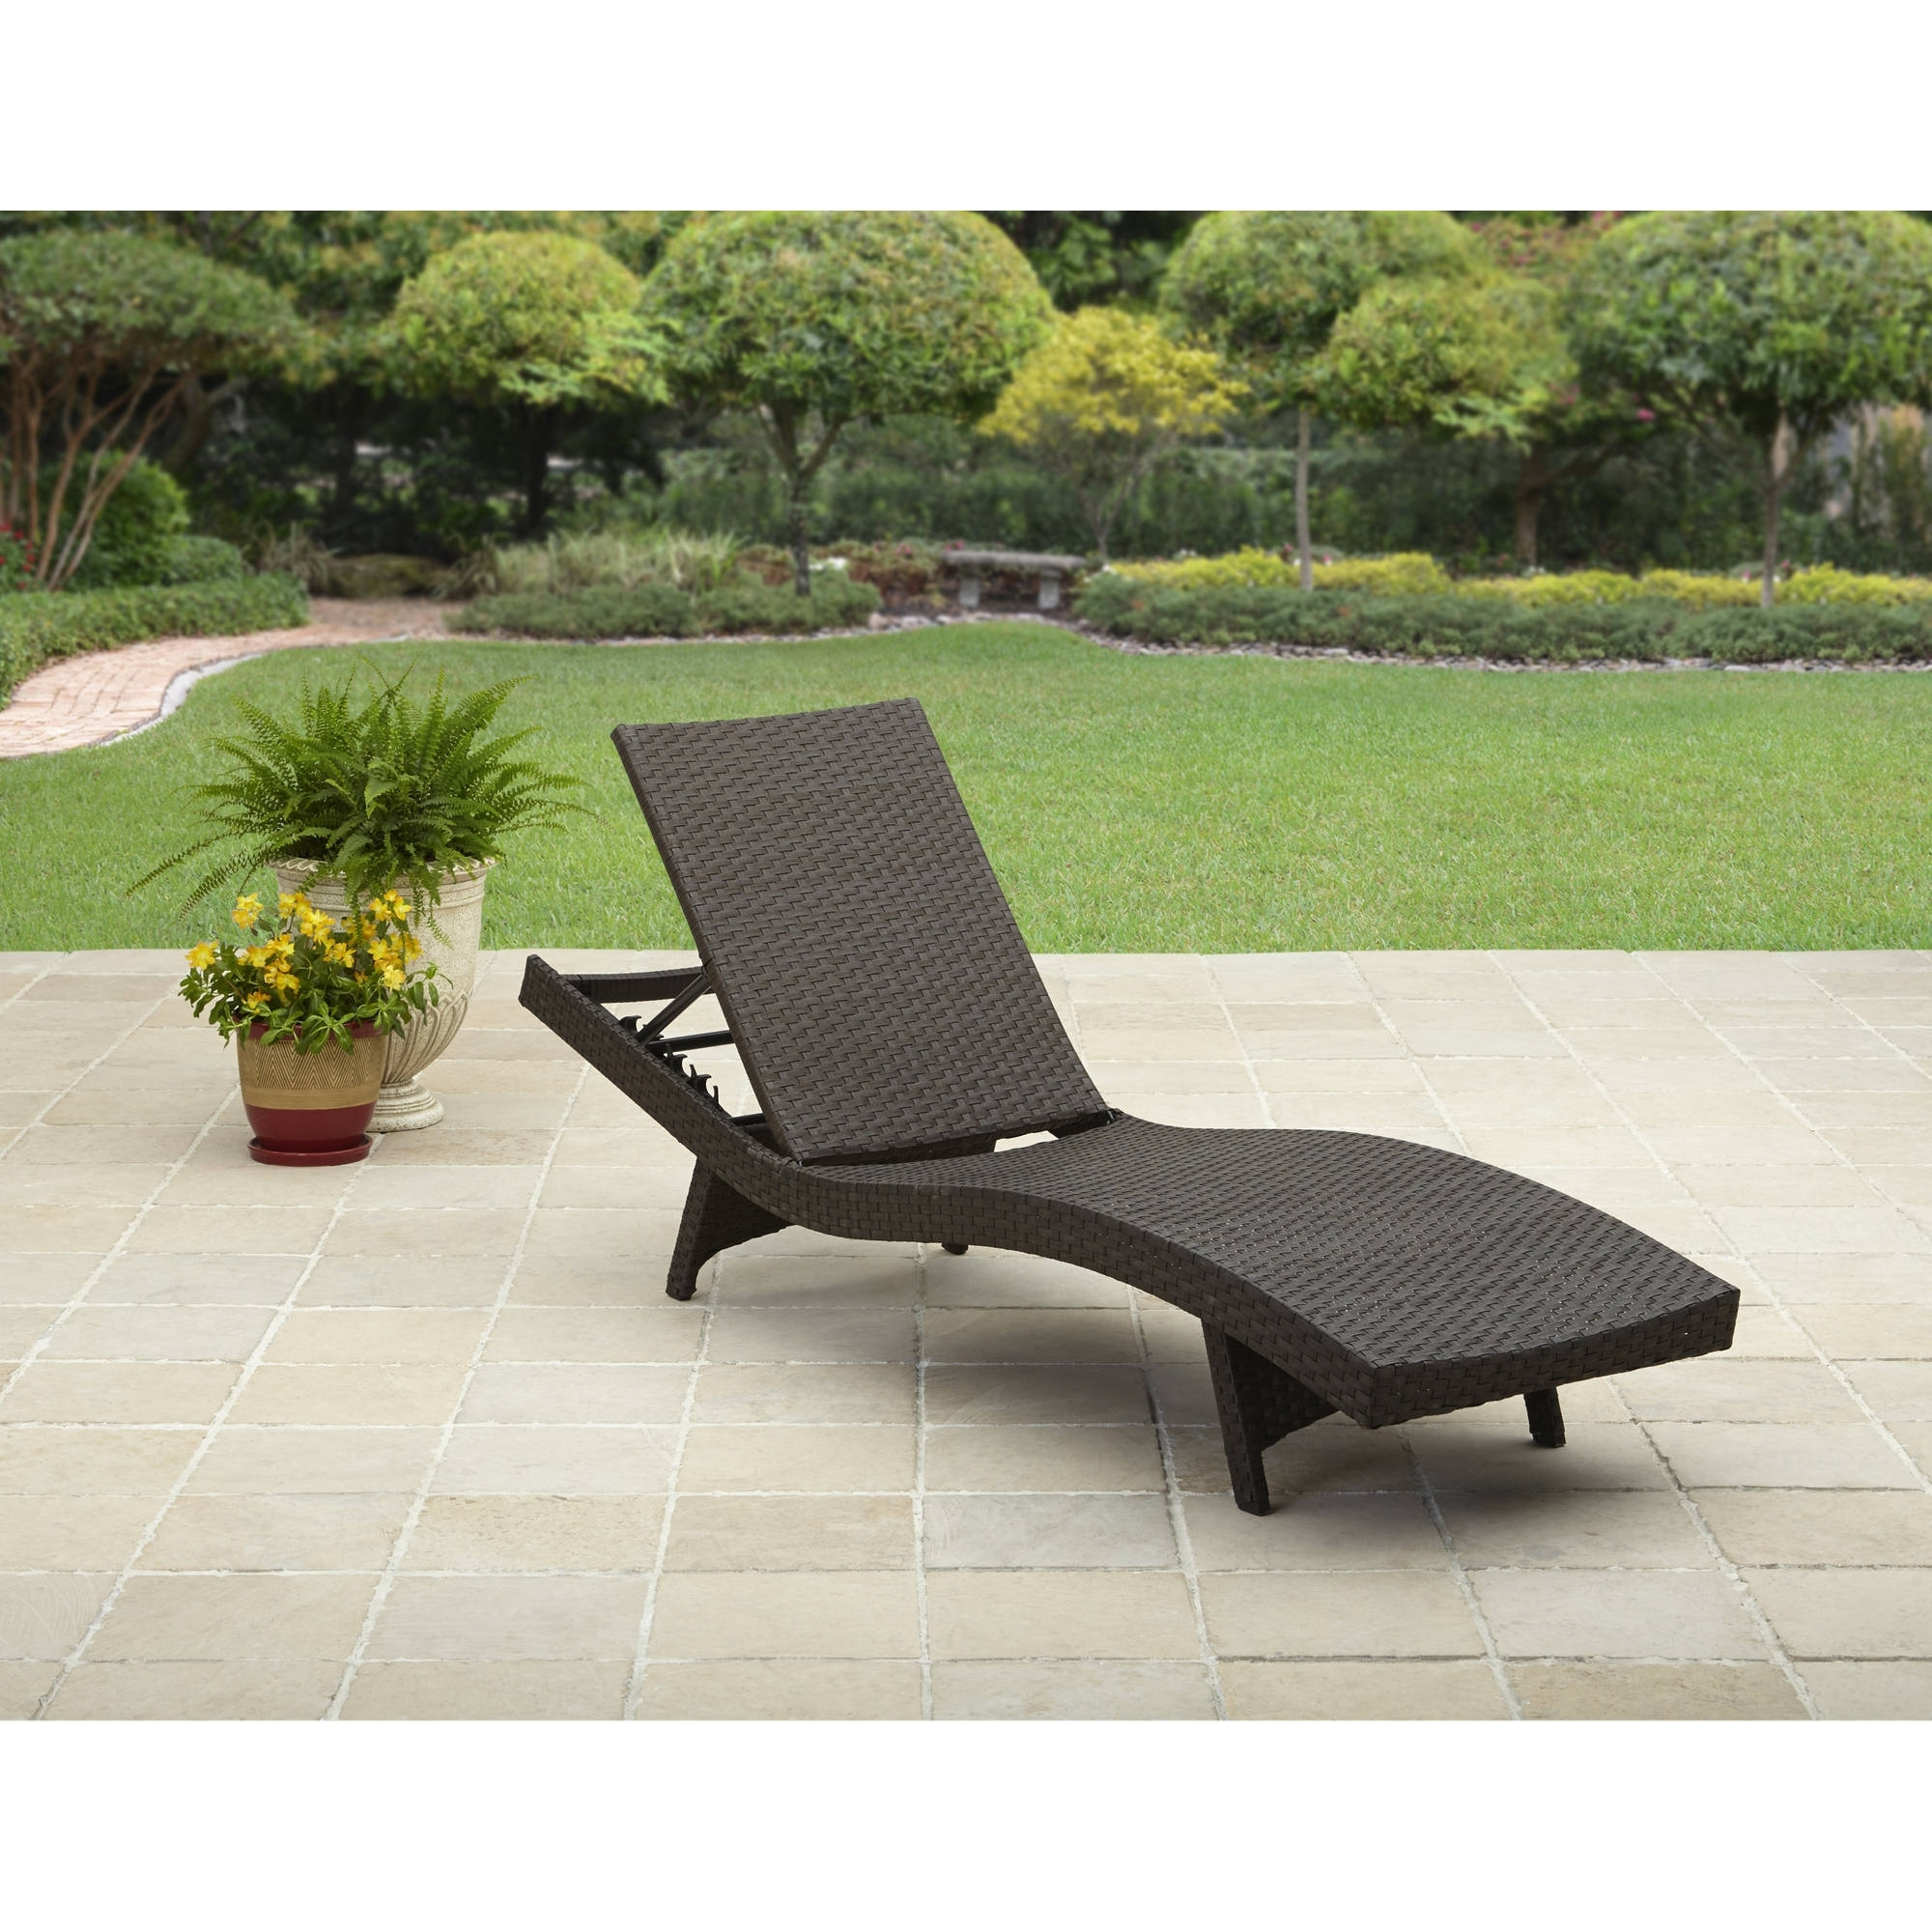 Most Current Portable Outdoor Chaise Lounge Chairs Inside Better Homes And Gardens Avila Beach Chaise – Walmart (View 4 of 15)